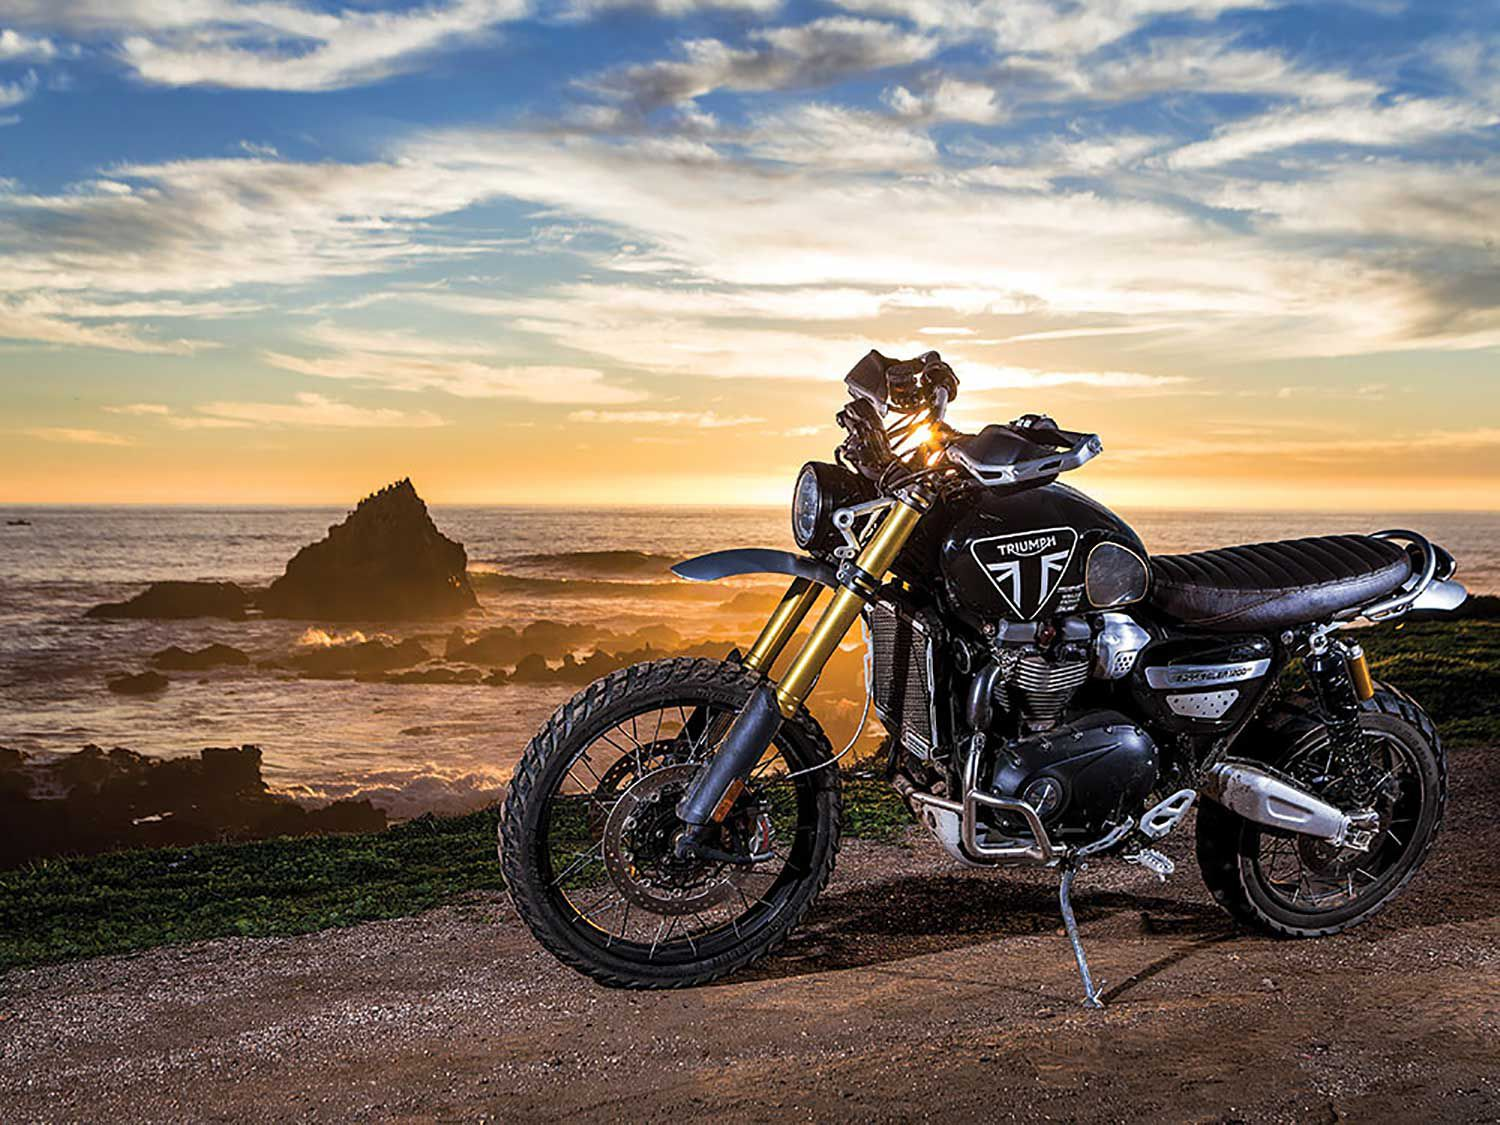 Stuntman Ernie Vigil rode a relatively stock Triumph Scrambler 1200 XE to fifth place in the Modern Open Class at the 2019 Mexican 1000.